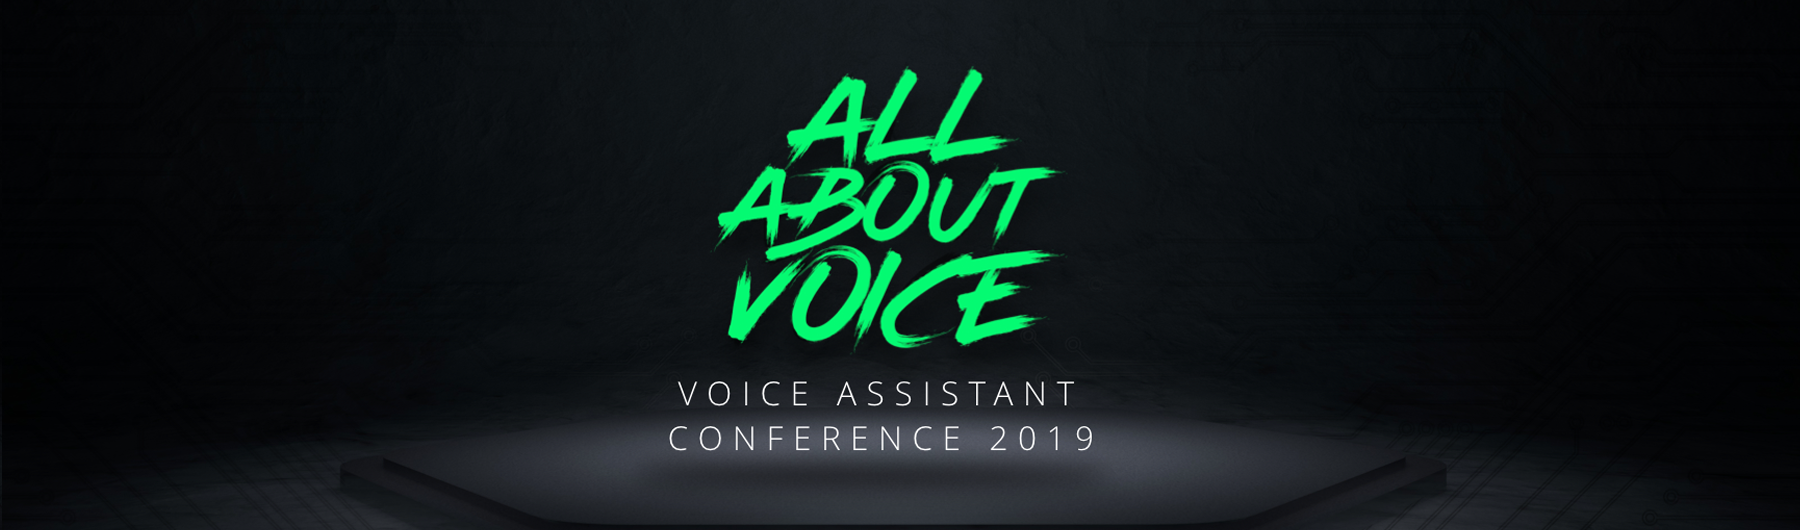 All About Voice Conference 2019